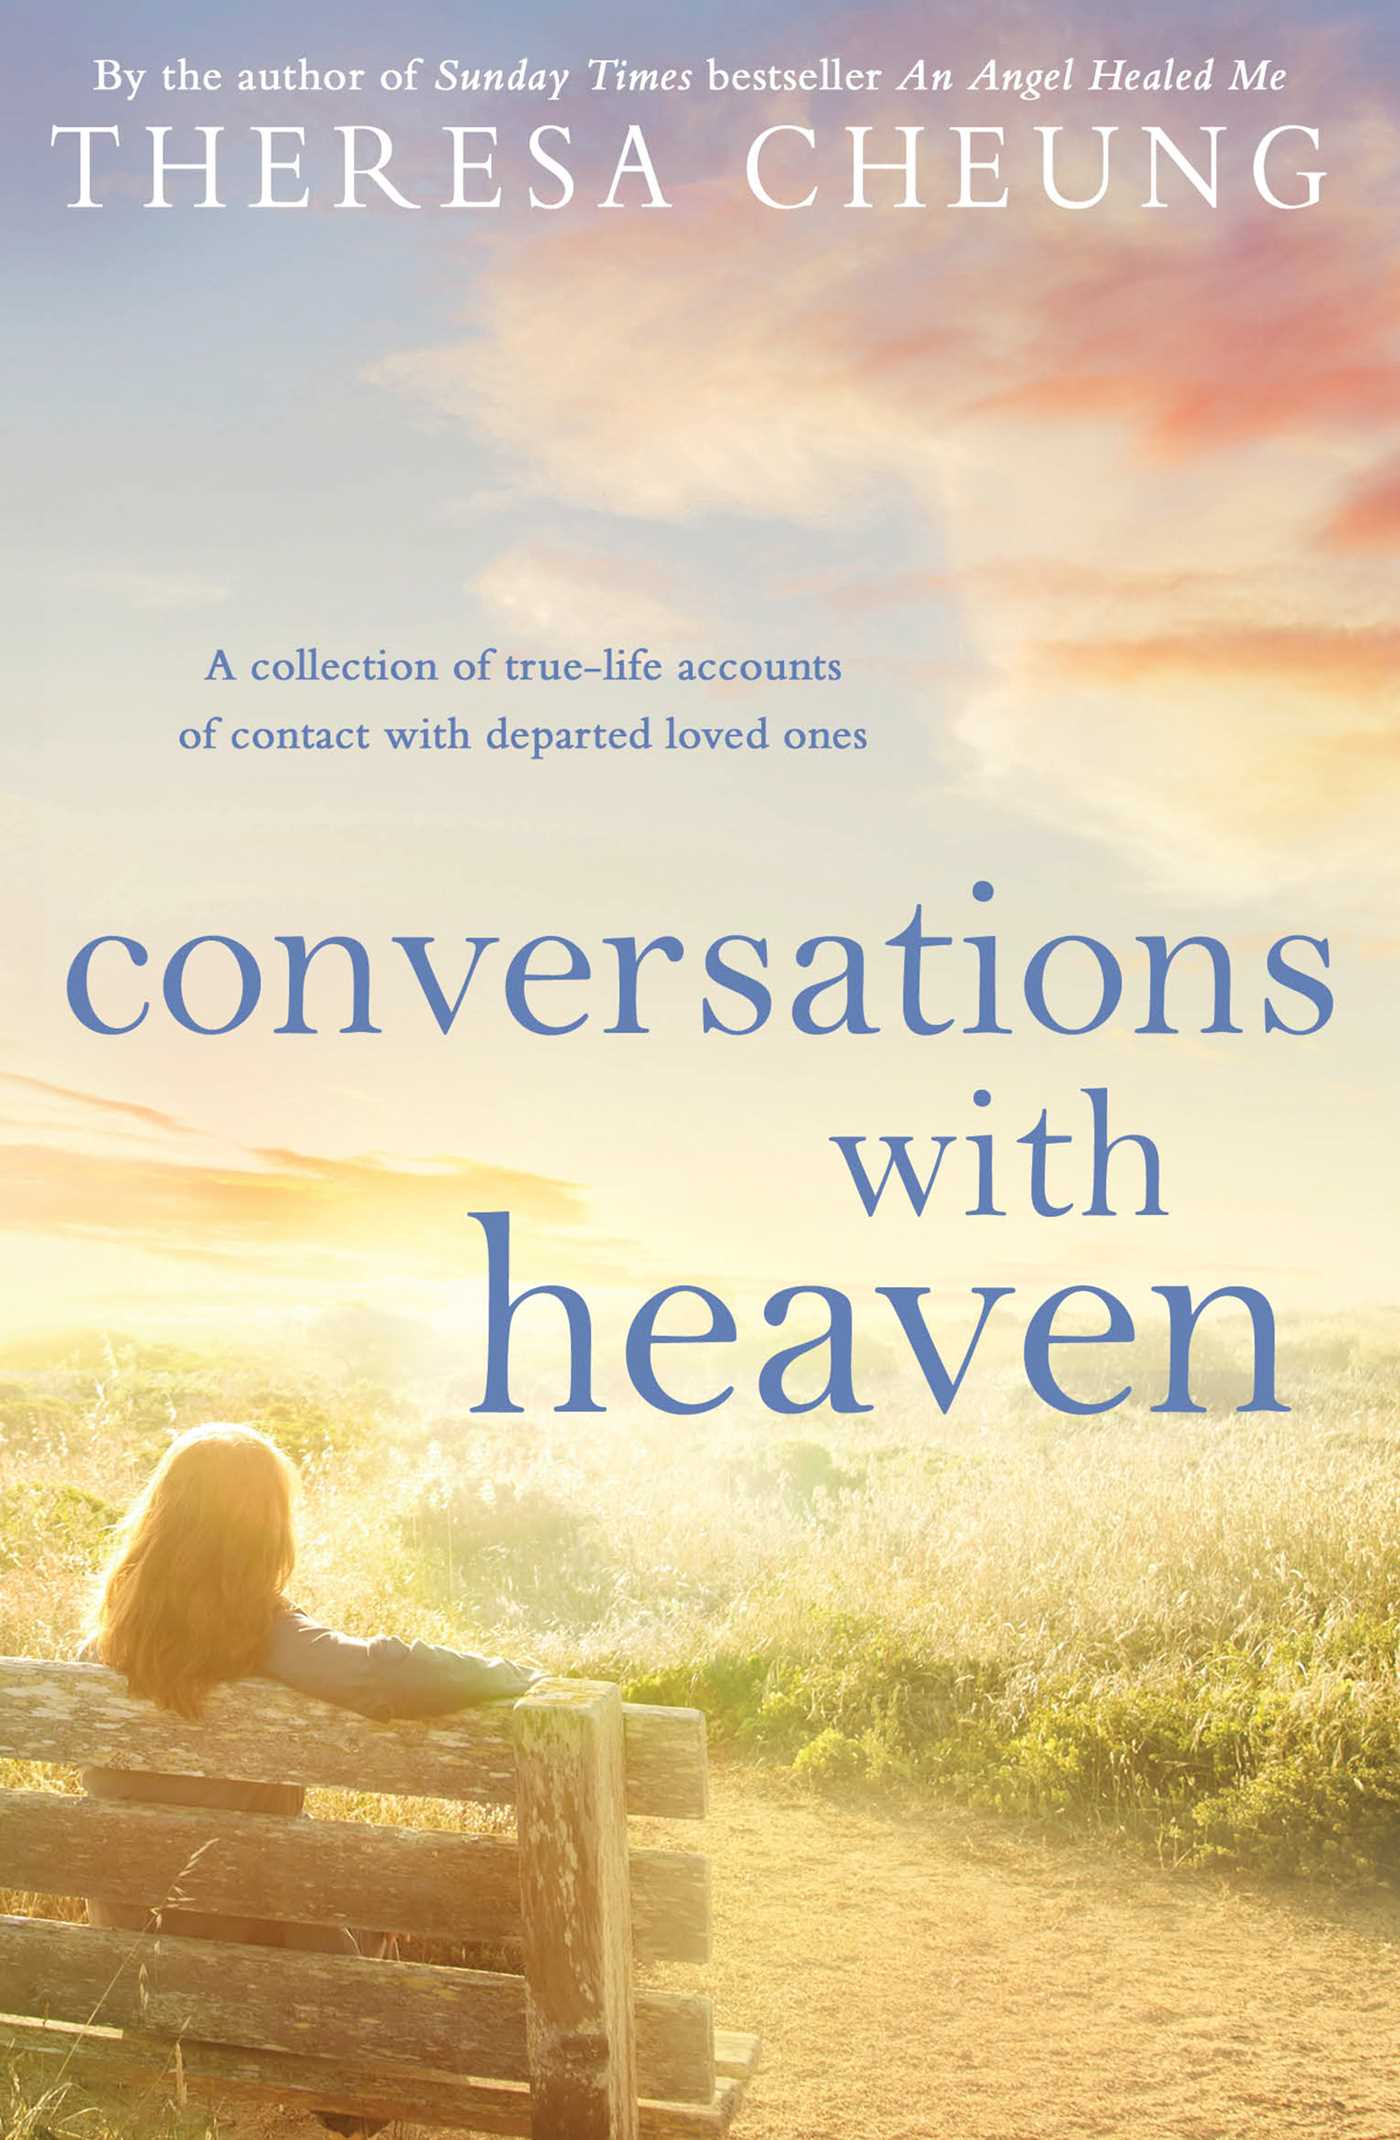 Conversations with heaven 9781471112393 hr